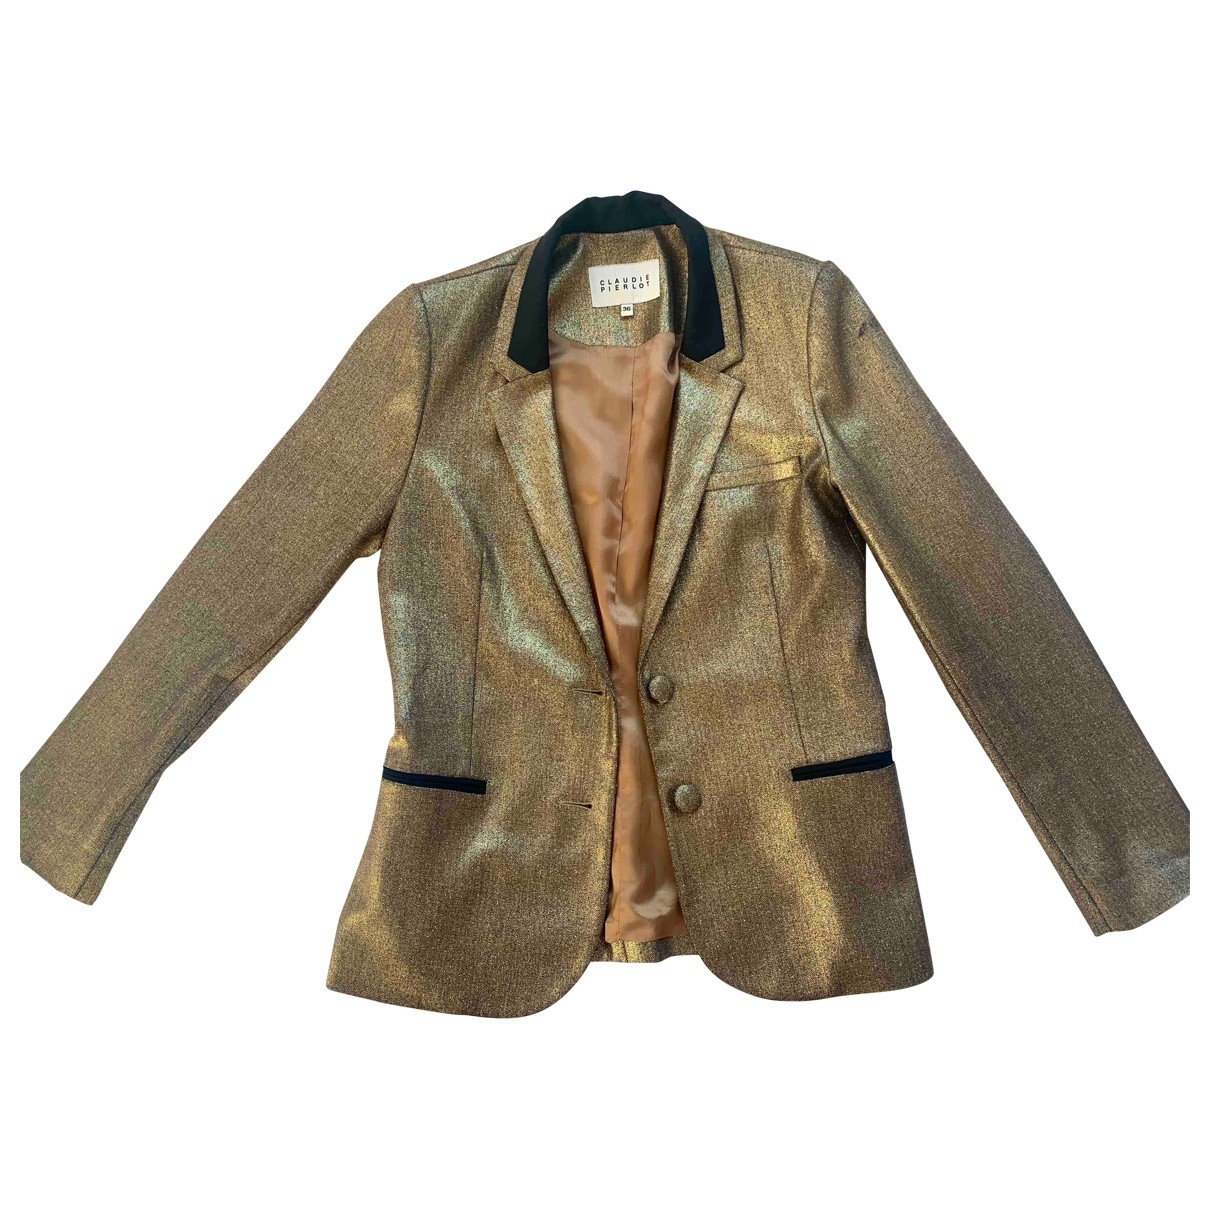 Claudie Pierlot \N Jacke in  Gold Mit Pailletten